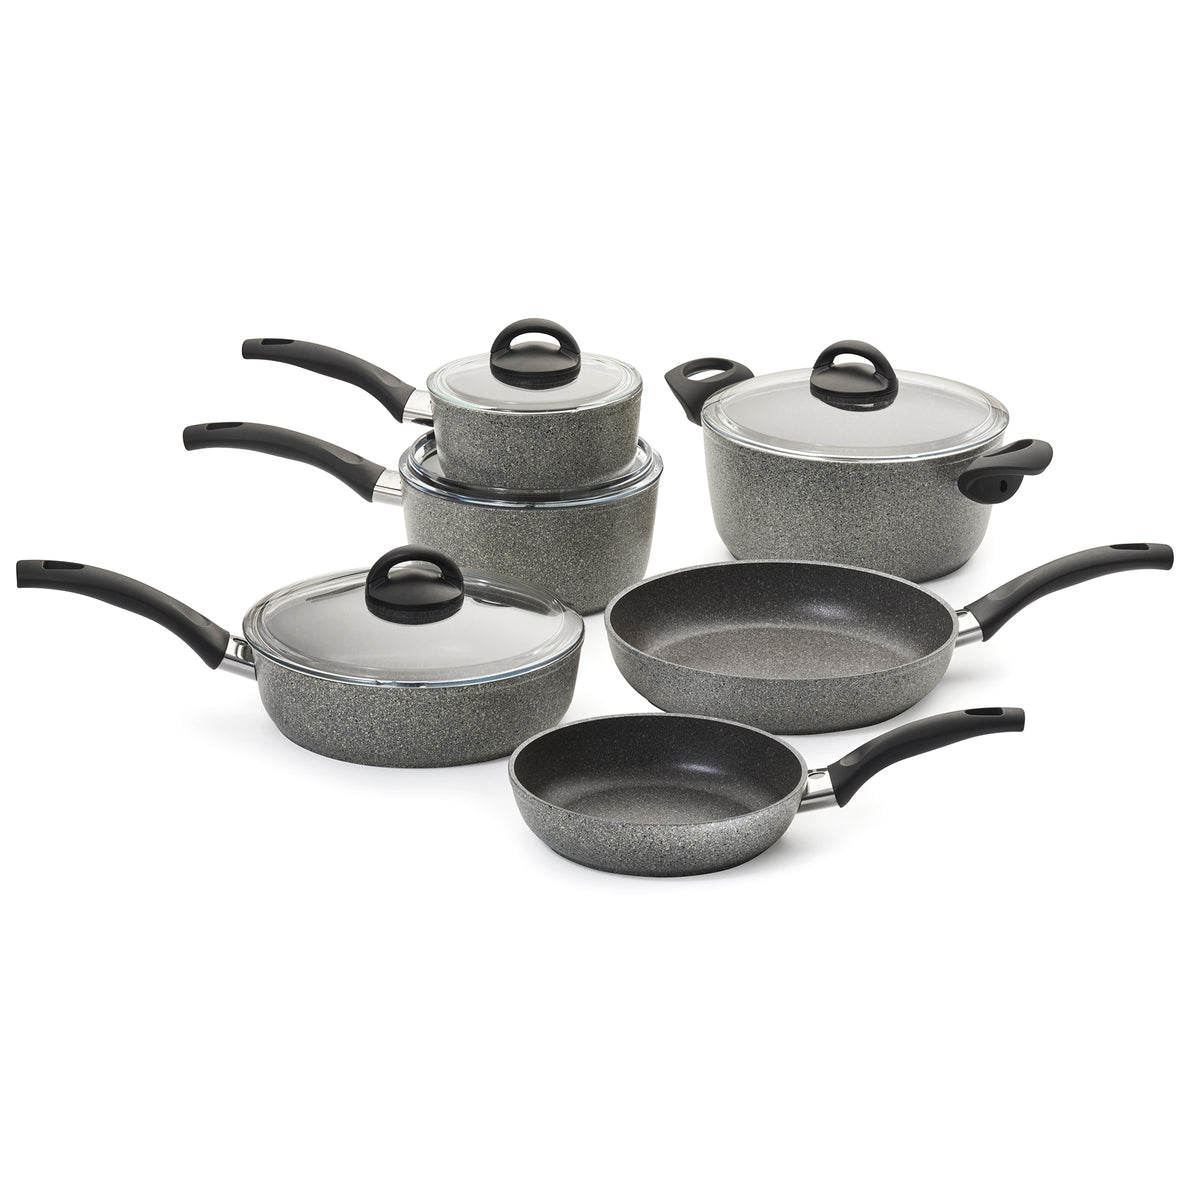 Ballarini Parma Forged Aluminum Nonstick Cookware Set, Set of 10